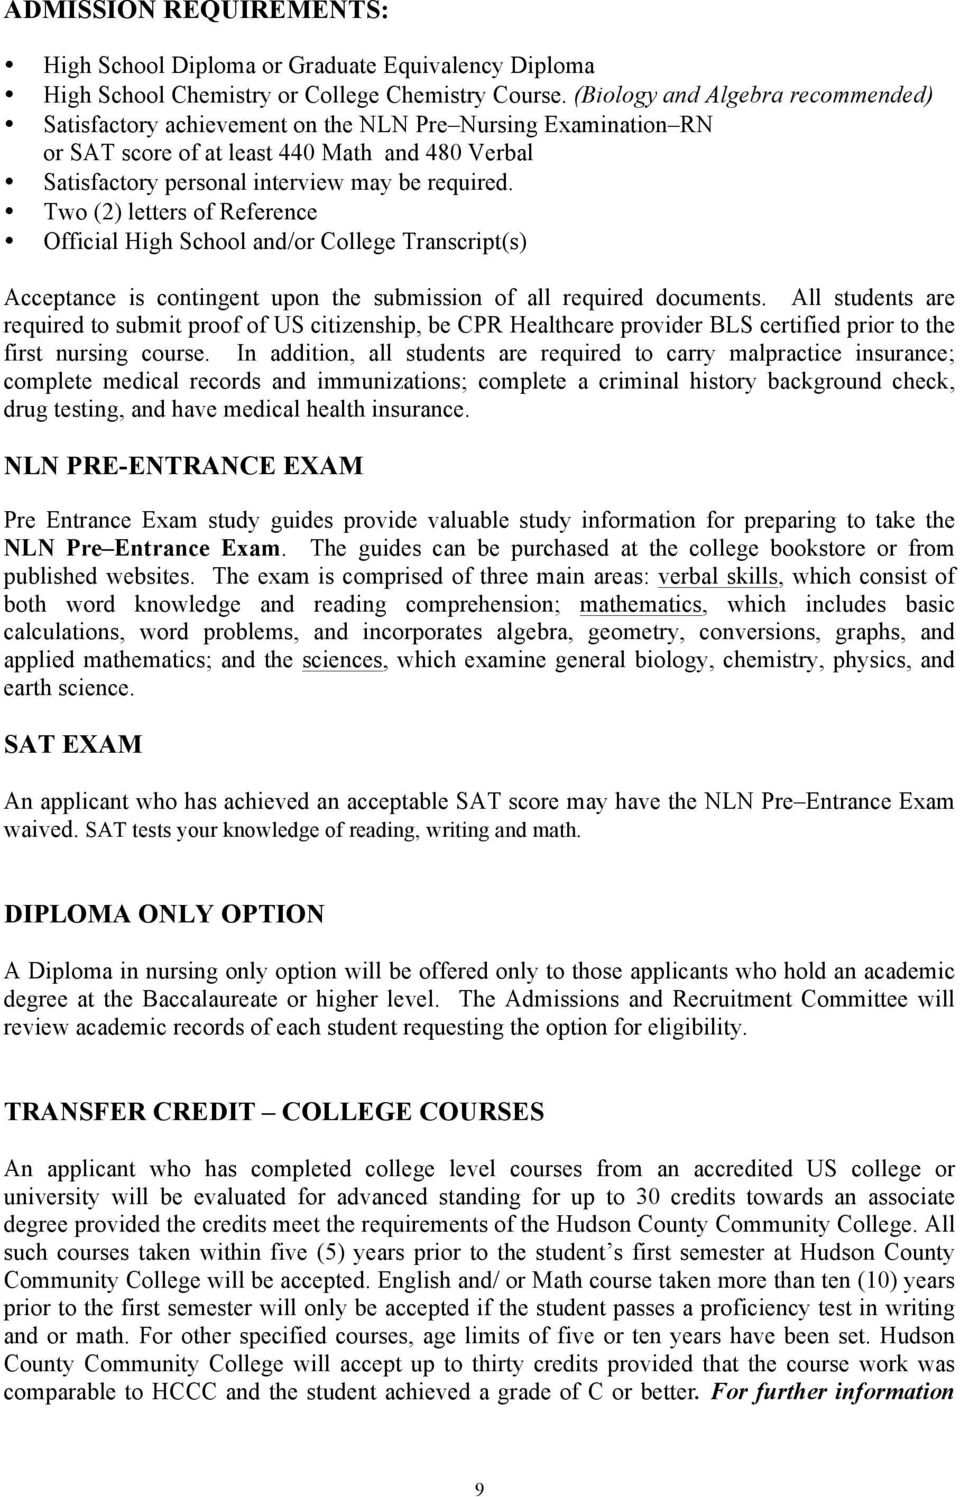 Two (2) letters of Reference Official High School and/or College Transcript(s) Acceptance is contingent upon the submission of all required documents.